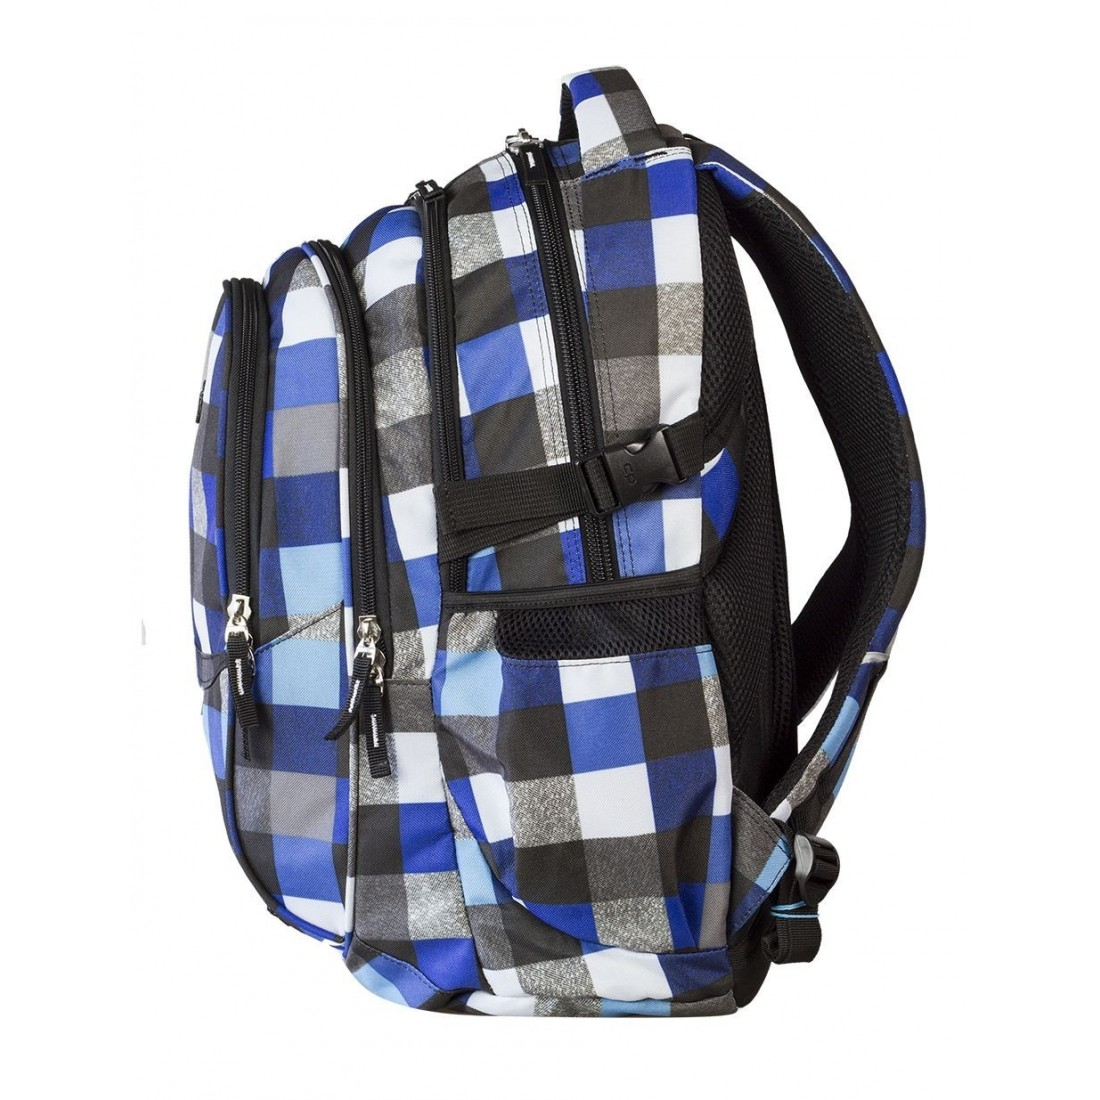 Plecak młodzieżowy CoolPack CP - 4 przegrody FACTOR BLUE SQUARED 446 - plecak-tornister.pl